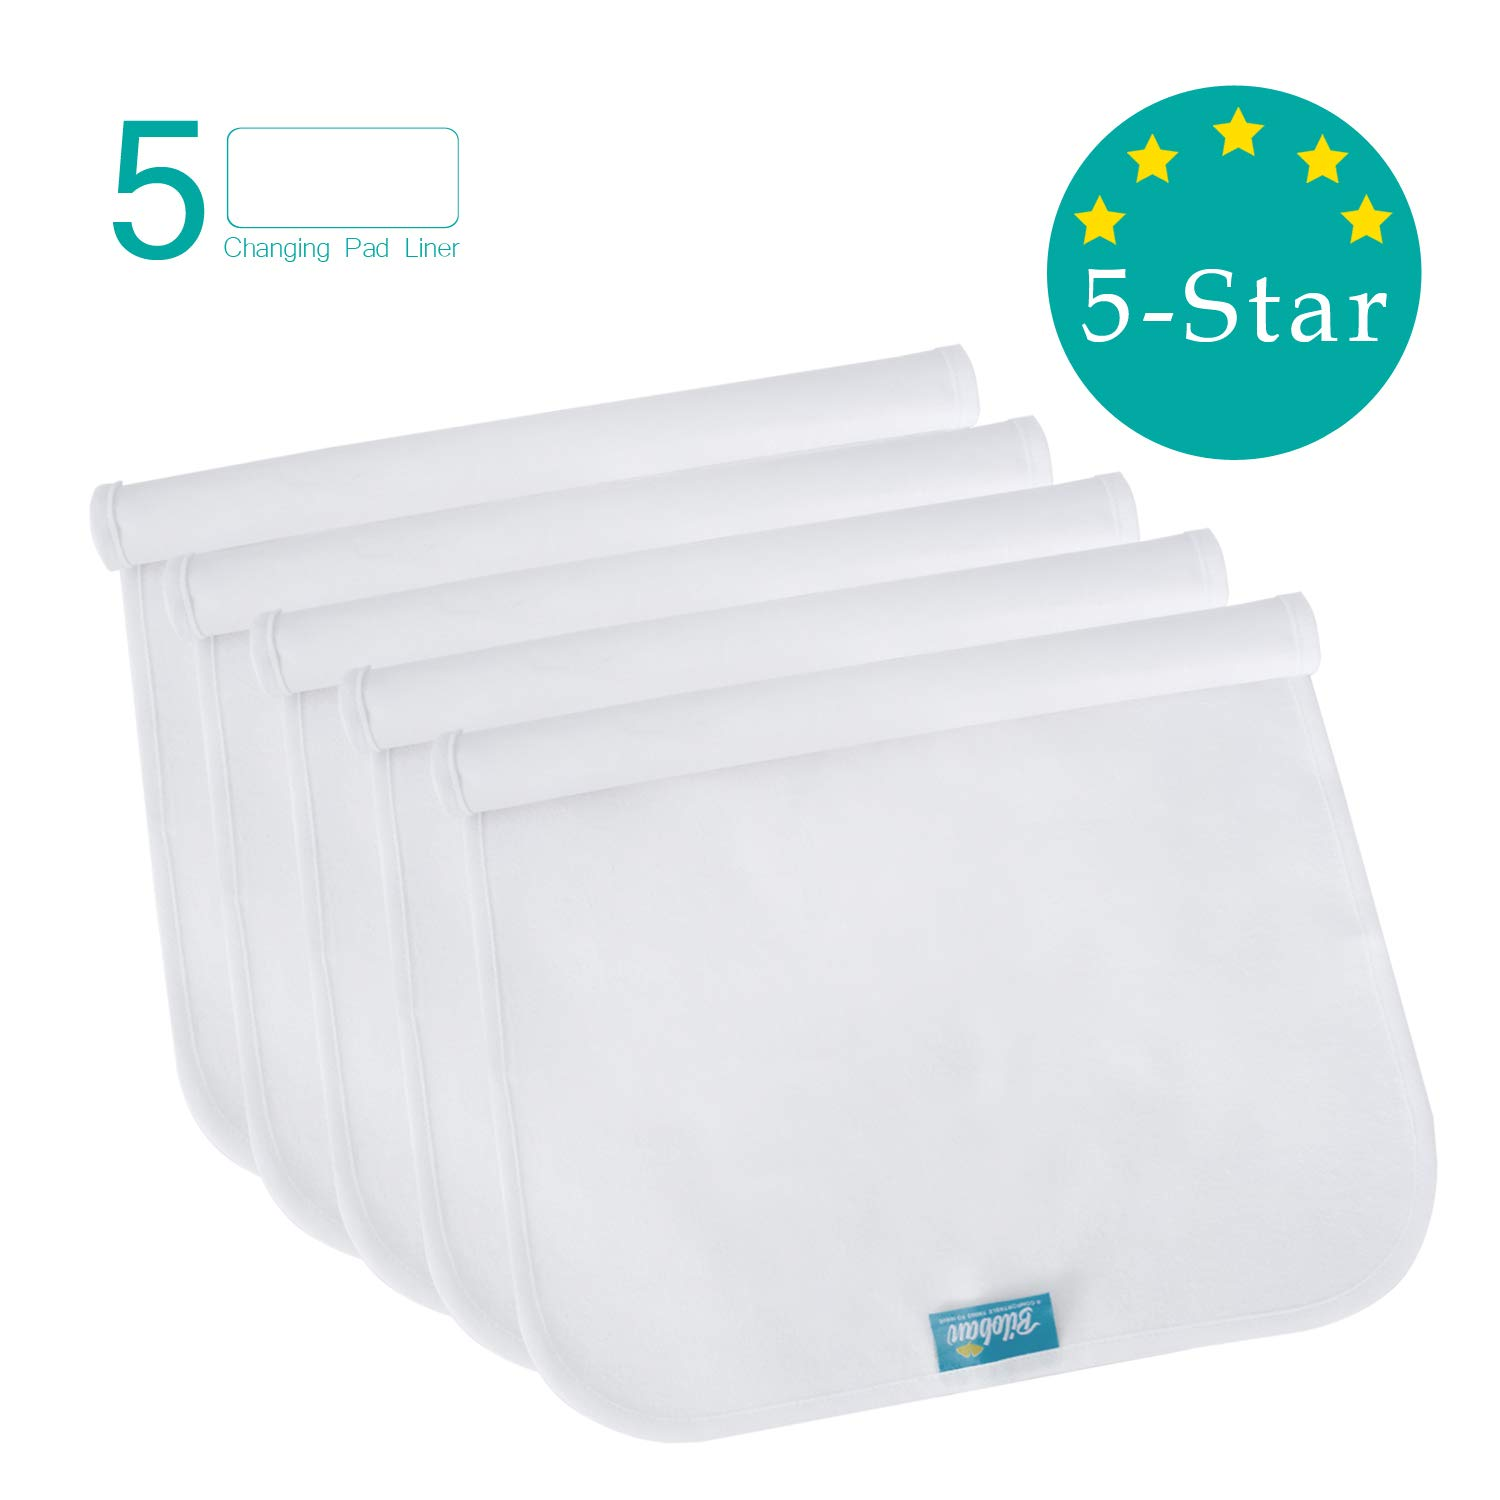 Changing Pad Liners Waterproof Washable (5 Count), Flannel Portable & Durable Extra Large 27'' X 14'' Travel Bassinet Waterproof Pad Liners, White by Biloban